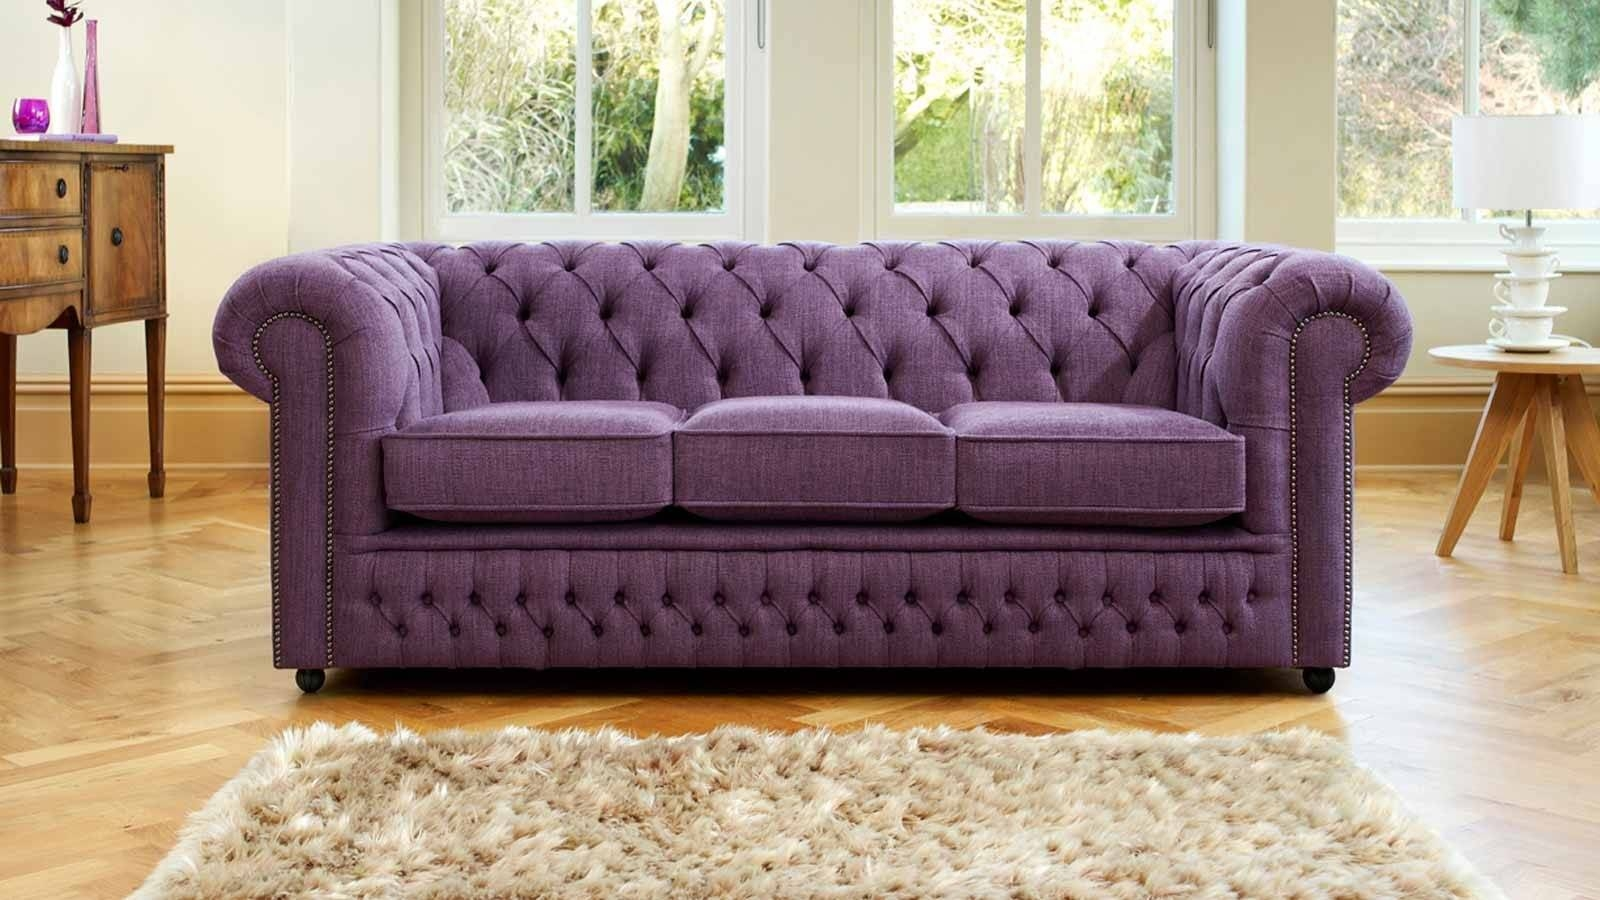 Purple Chesterfield Sofa - Classy Chesterfield Sofa Gallery with Purple Chesterfield Sofas (Image 8 of 15)